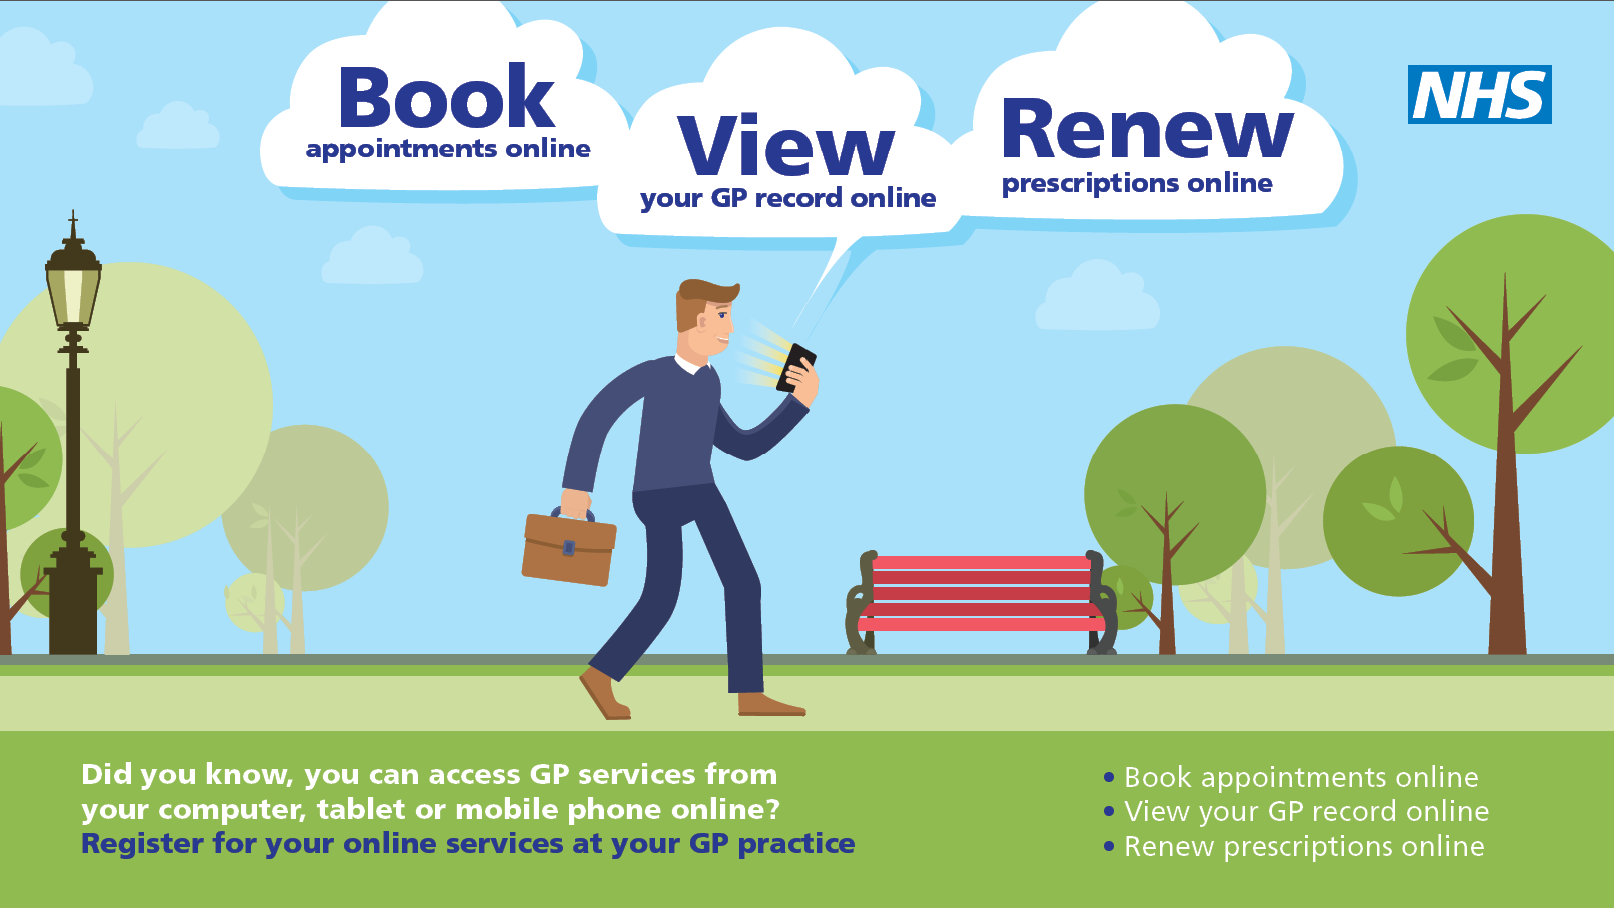 Book appointments, view your GP record and renew prescriptions online